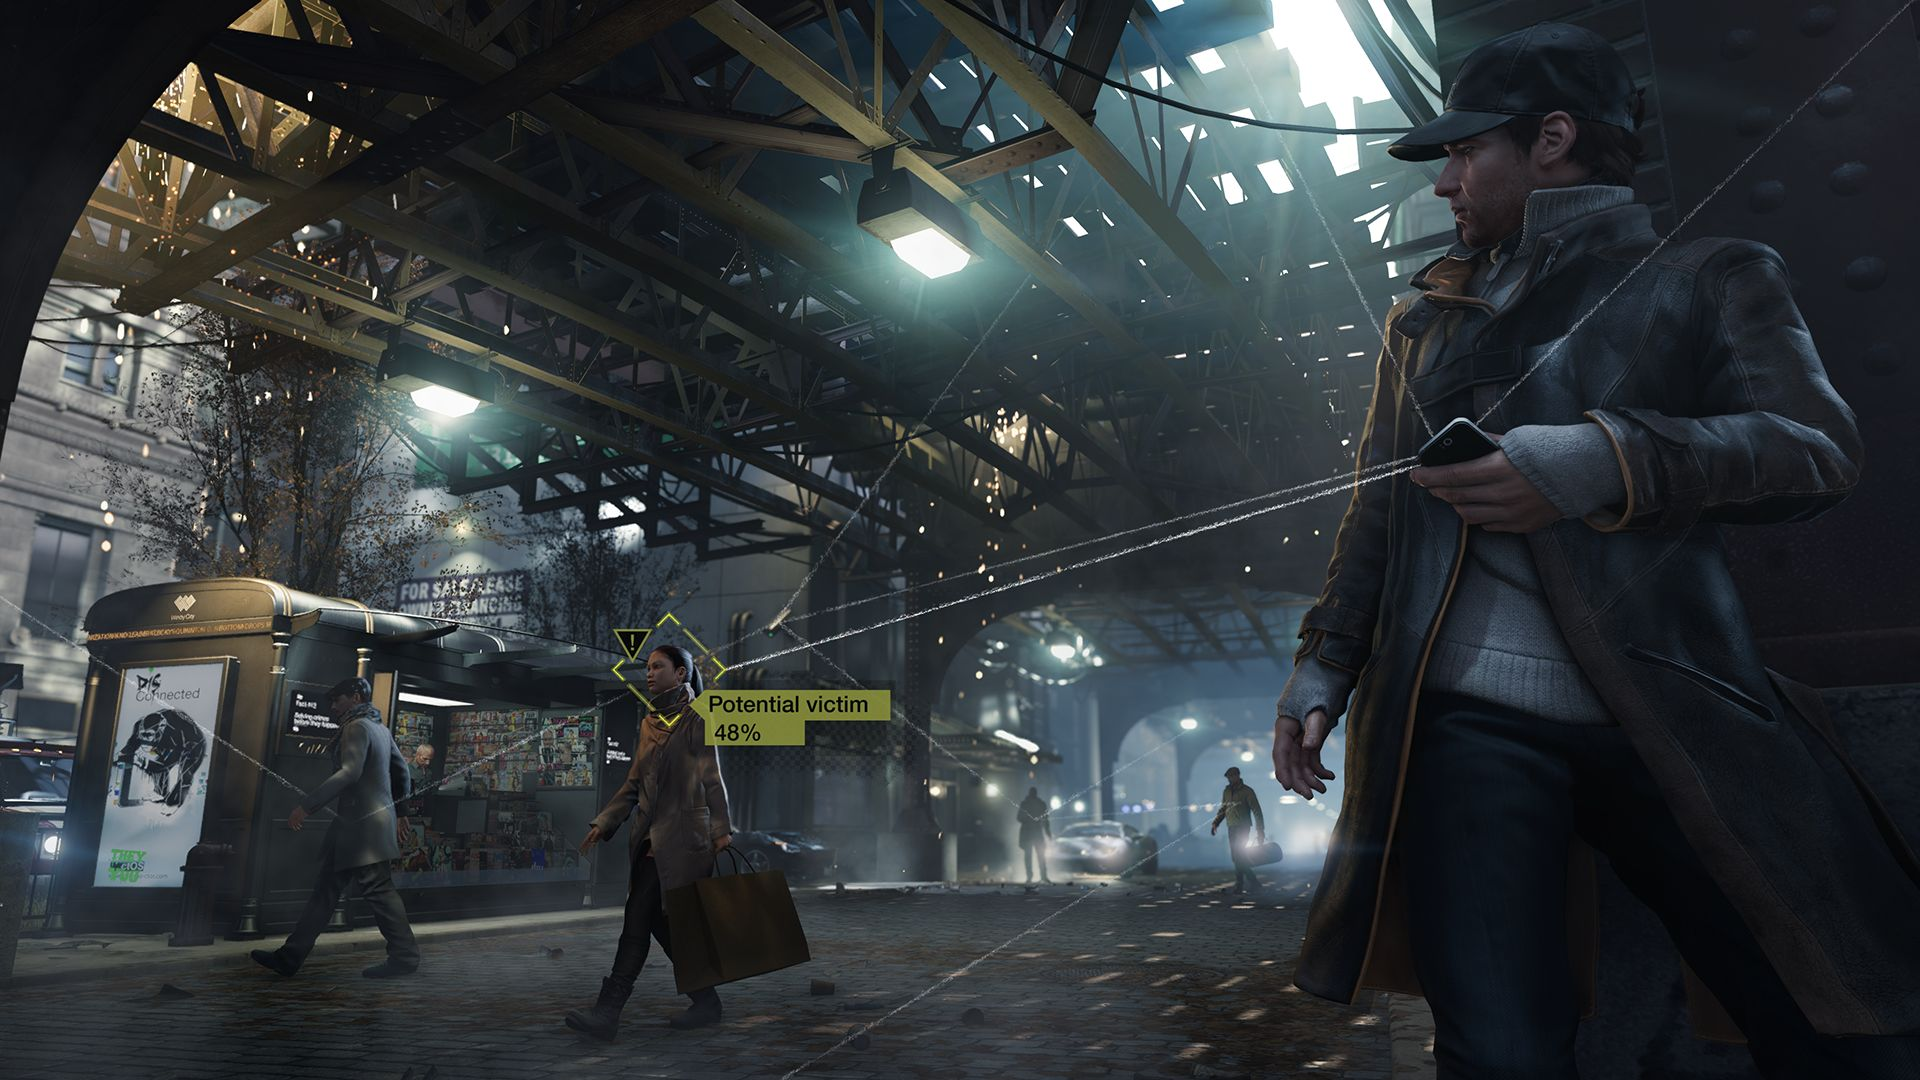 Watch Dogs: Egy exkluzív trailer